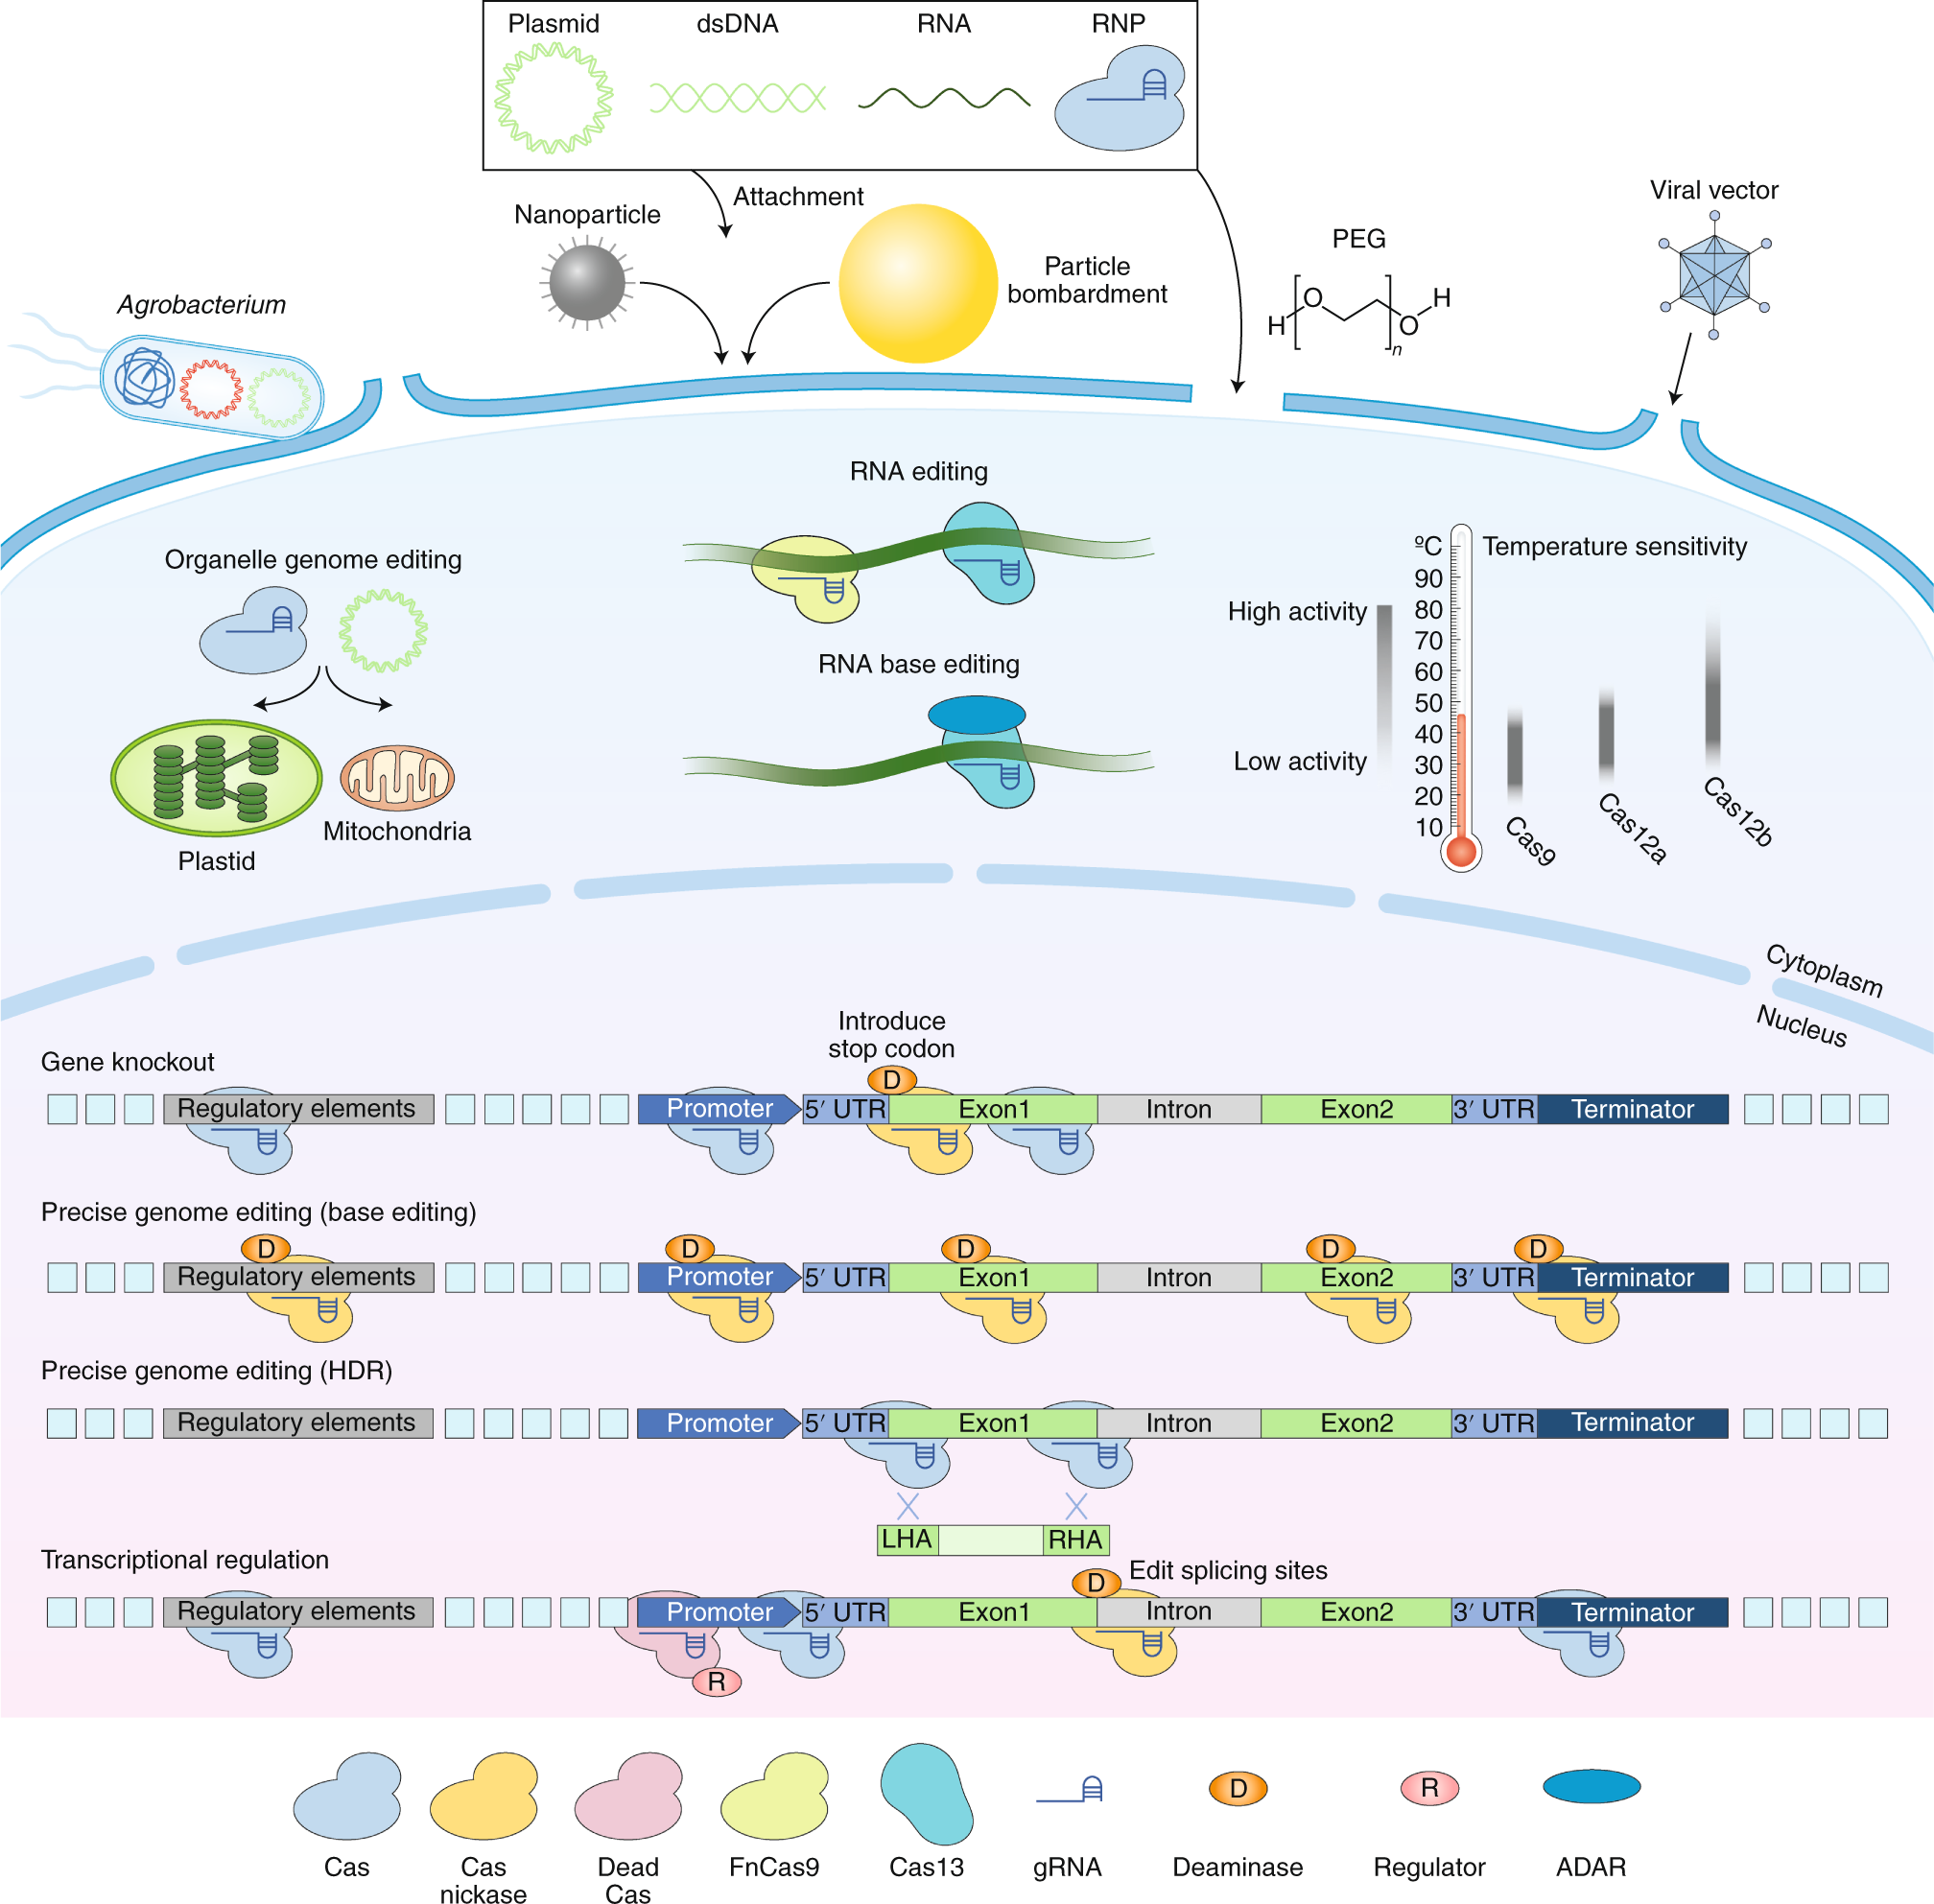 The emerging and uncultivated potential of CRISPR technology in plant